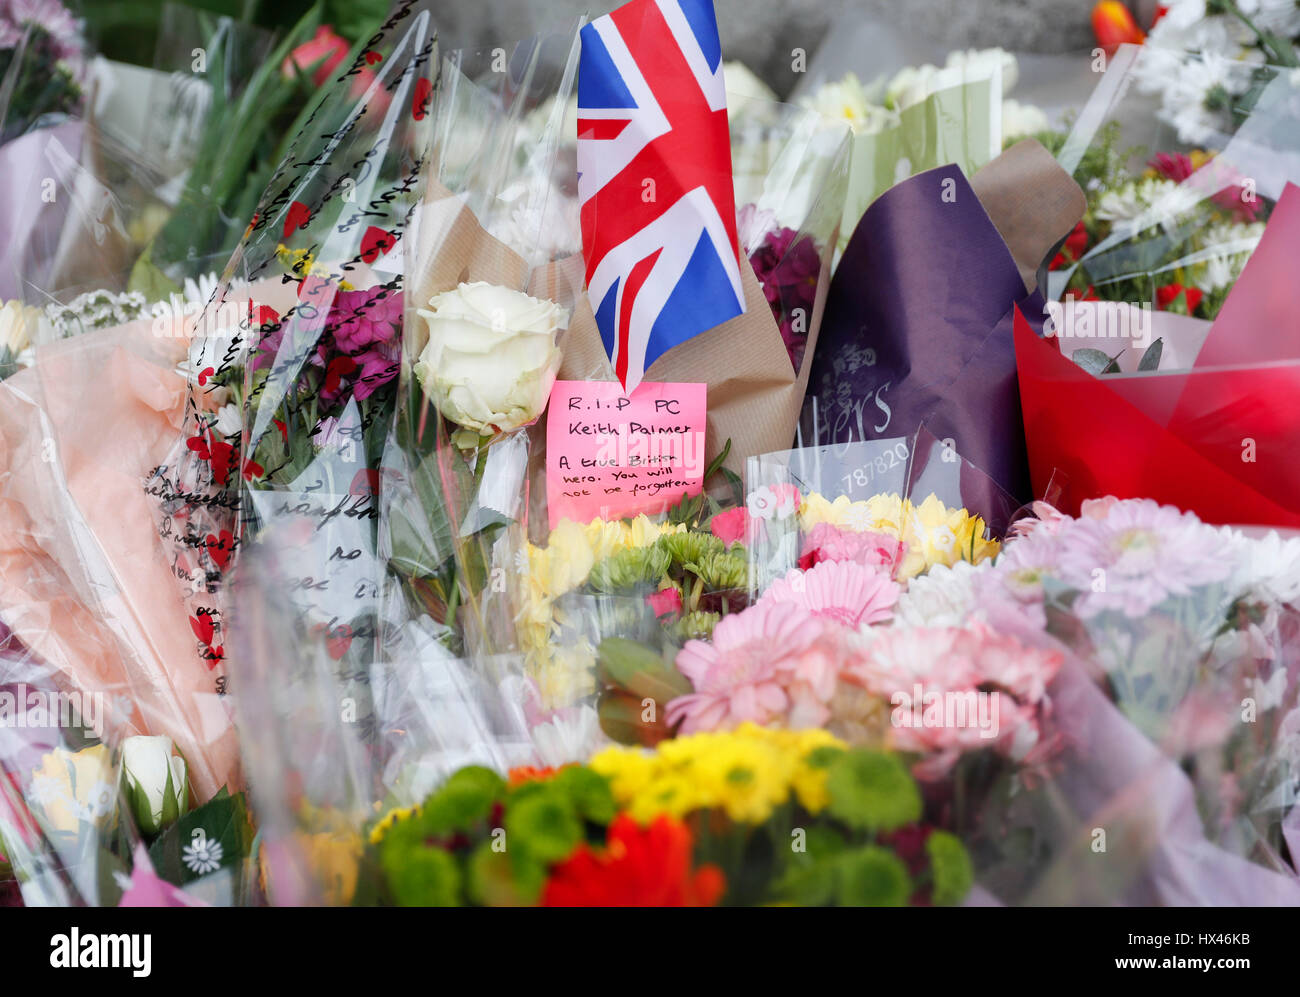 London, UK. 24th March, 2017. Westminster terror attack in central London.  Floral tributes to the victims are seen outside the Houses of Parliament, two days after the March 22 Westminster terror attack in central London, Britain on March 24, 2017. Credit: Han Yan/Xinhua/Alamy Live News Stock Photo